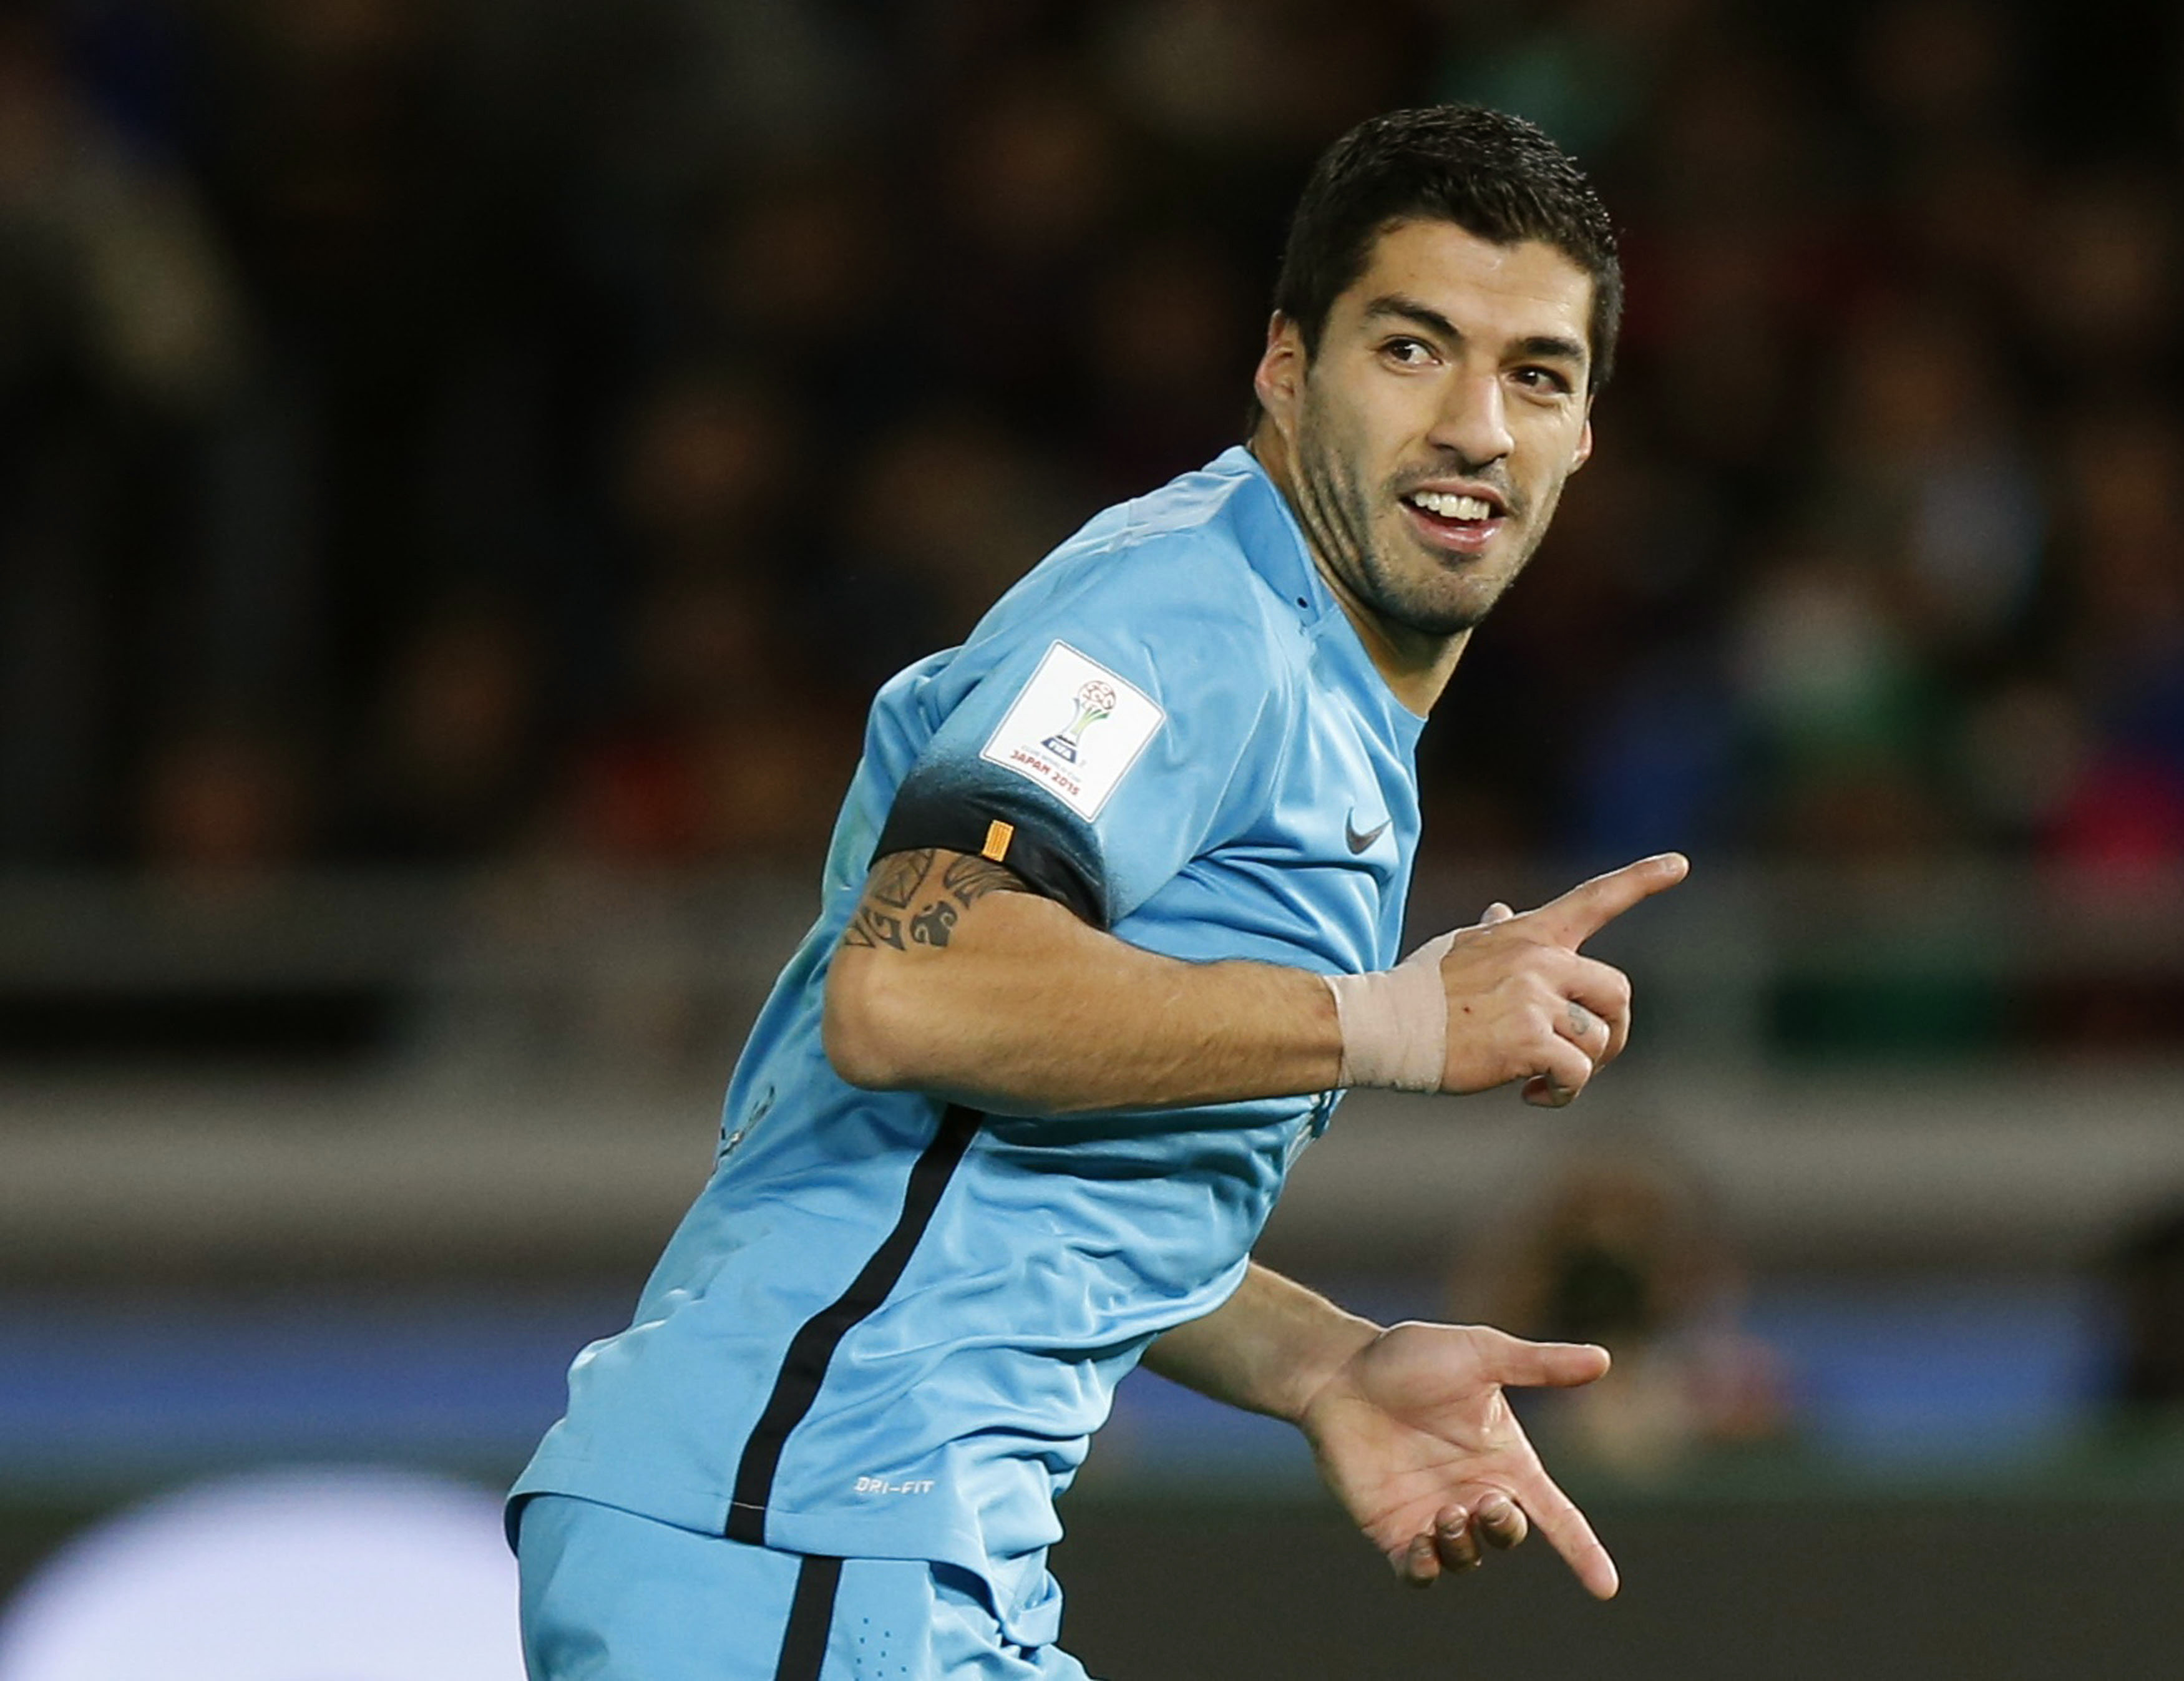 Barcelona's Luis Suarez celebrates after scoring against Guangzhou Evergrande during their Club World Cup semi-final soccer match in Yokohama, south of Tokyo, Japan, December 17, 2015. Photo: Reuters